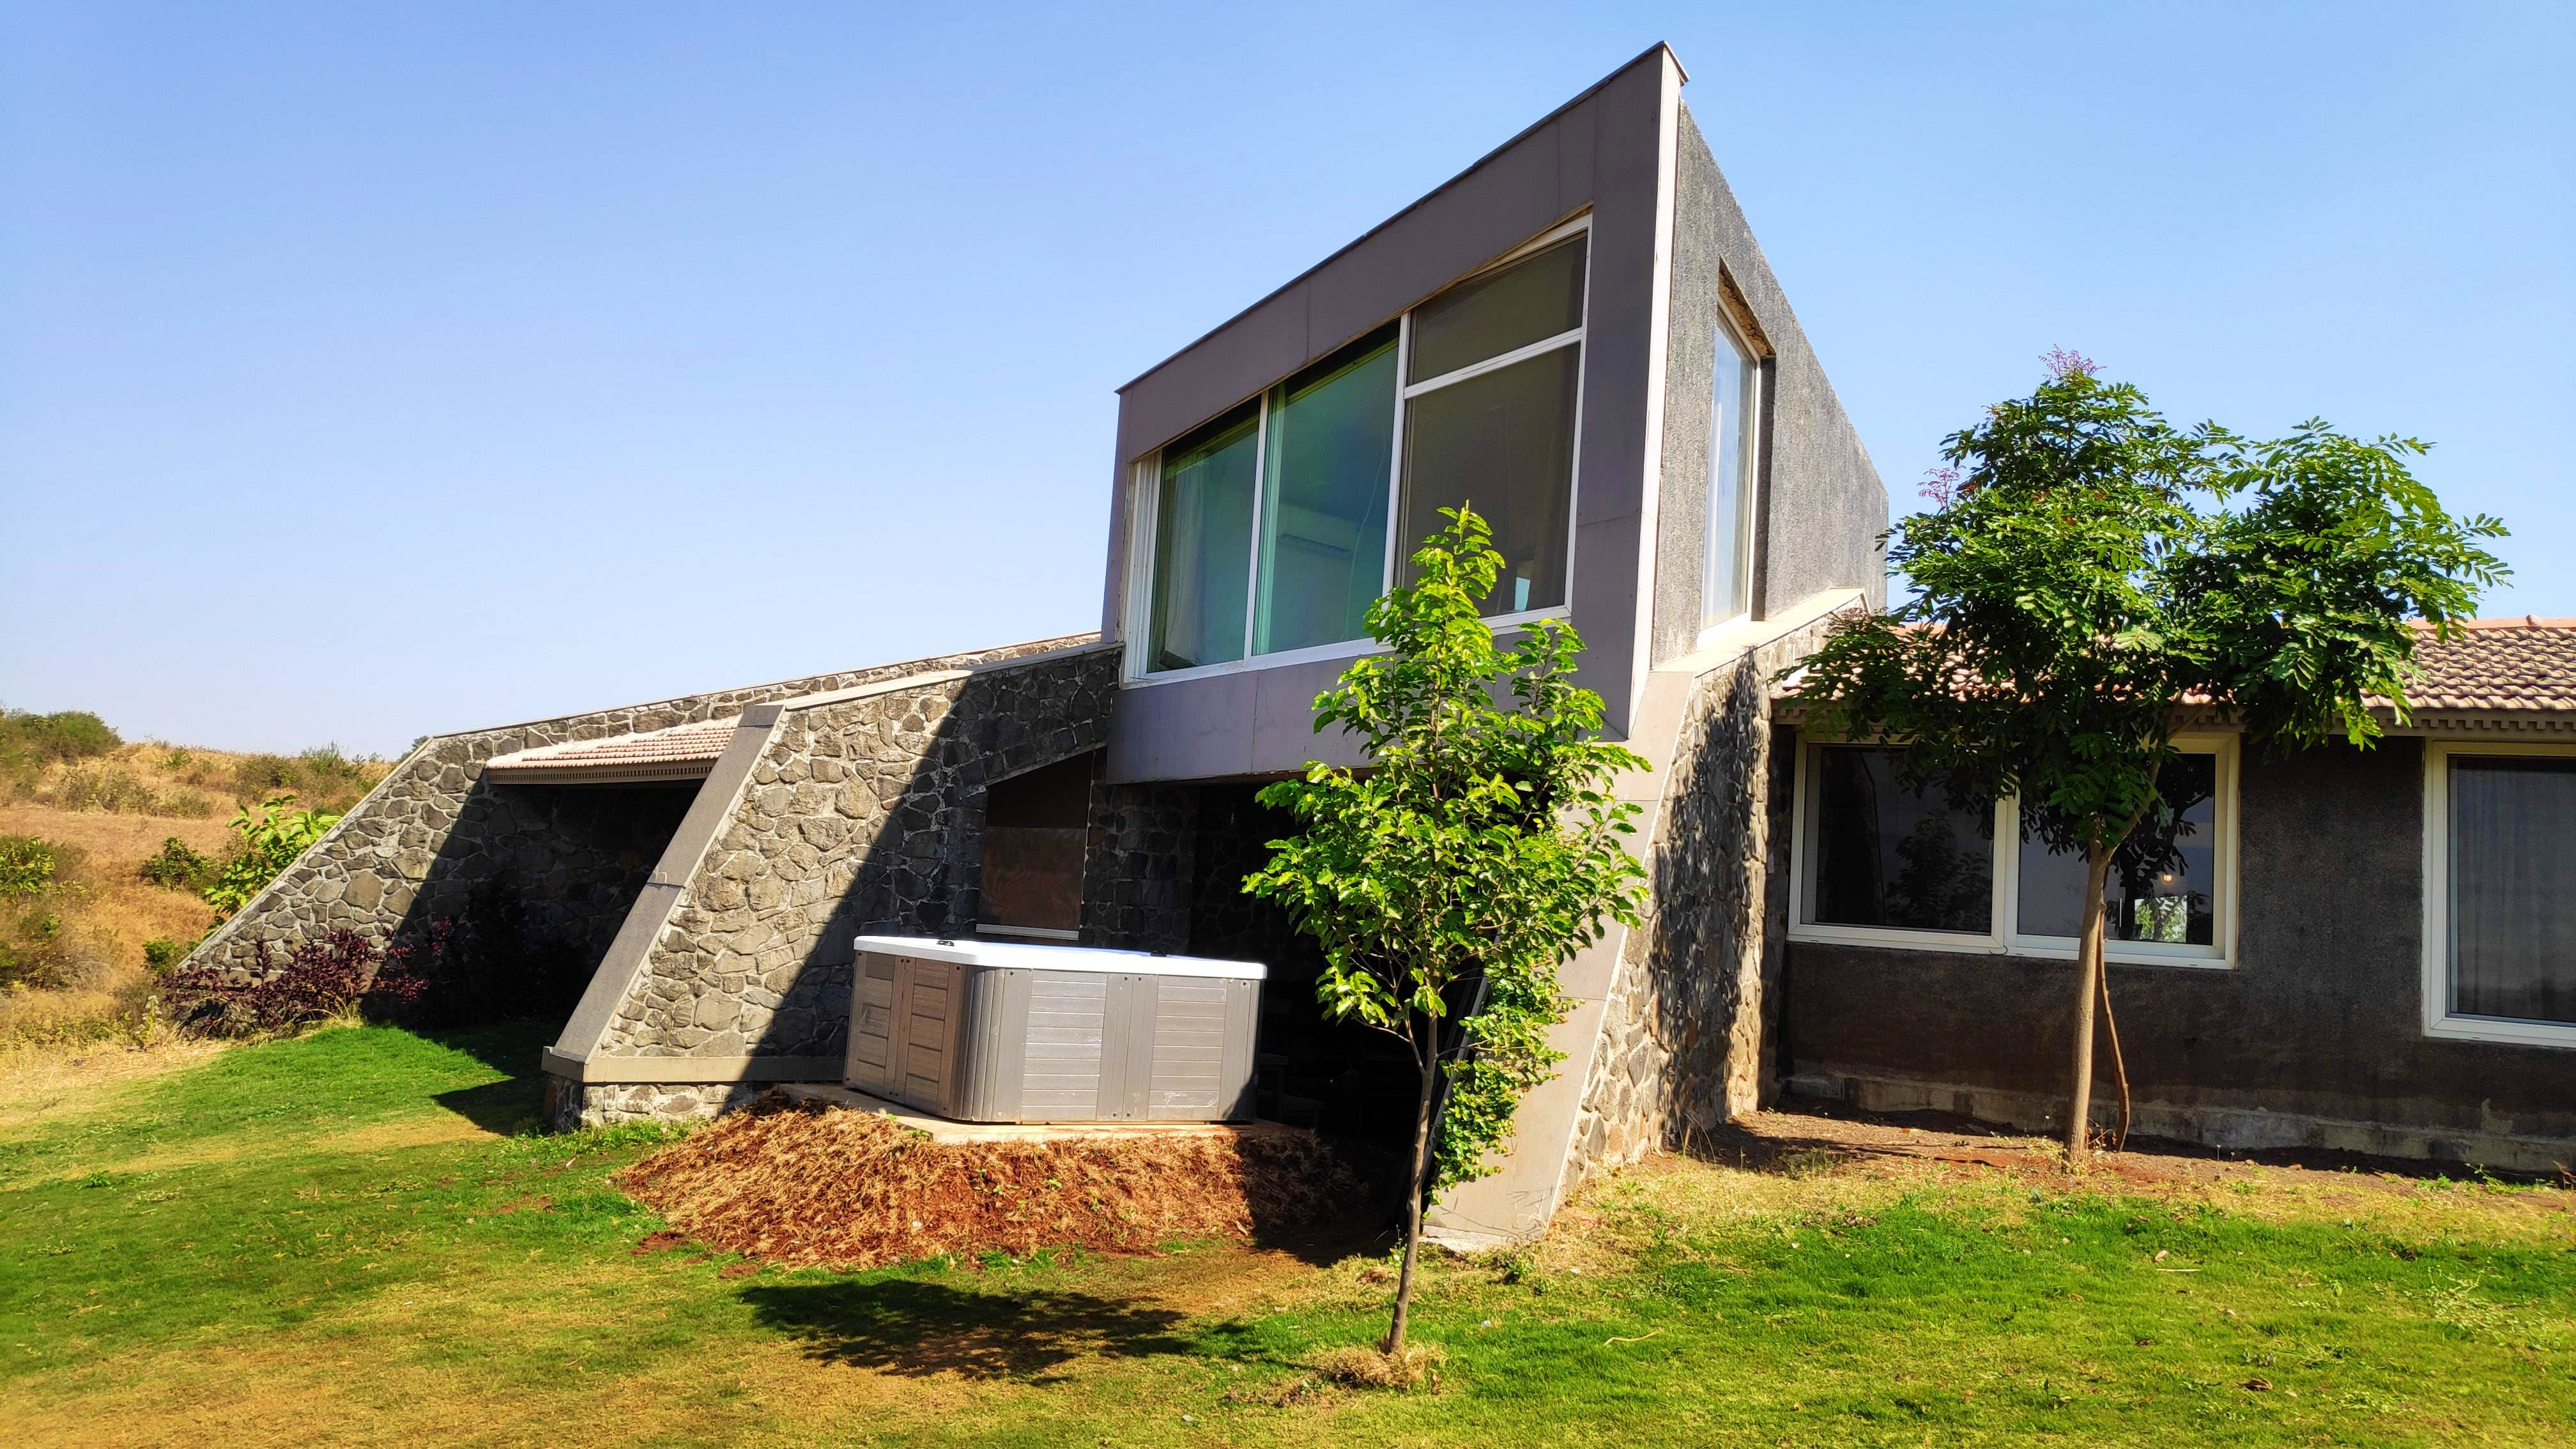 House,Property,Architecture,Home,Building,Real estate,Residential area,Facade,Tree,Rural area